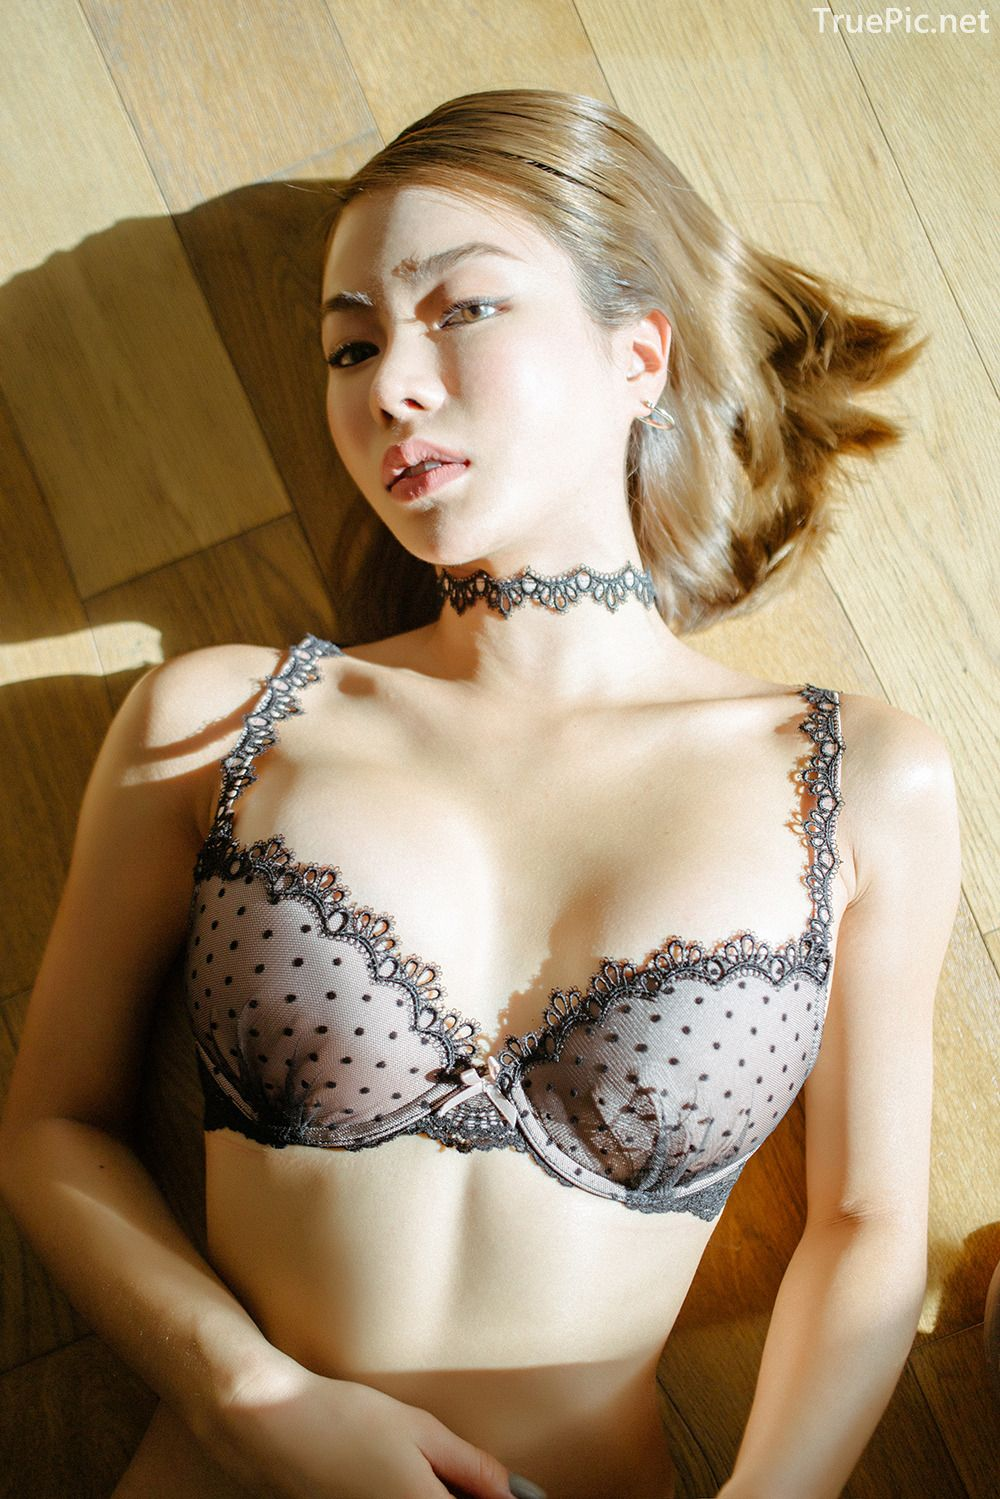 Lingerie queen An Seo Rin - Choker Lingerie Set - Korean model fashion - Picture 1